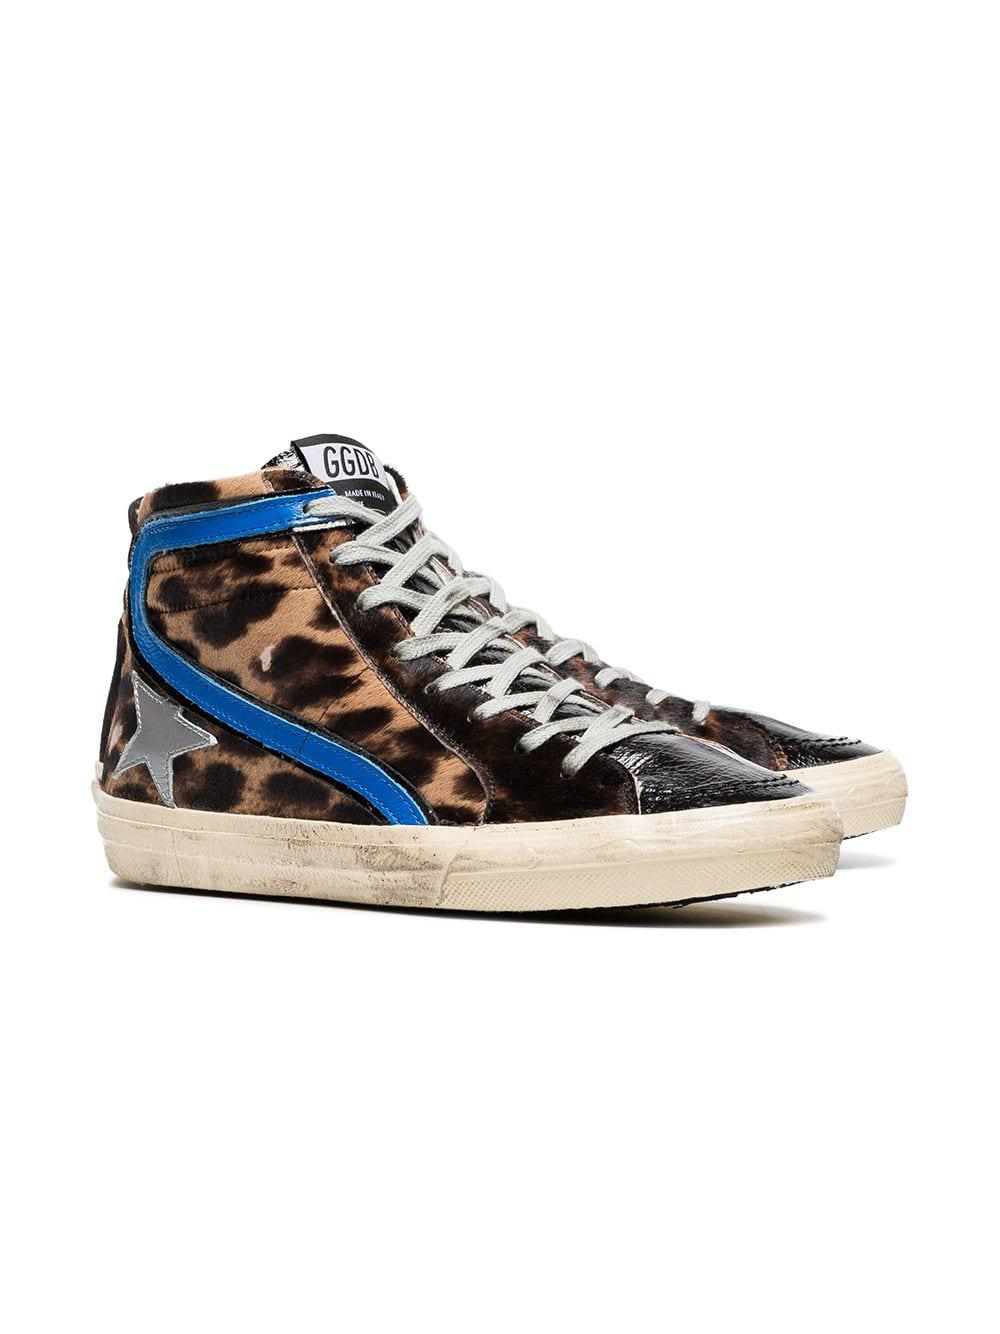 Golden Goose Deluxe Brand Leather slide Sneakers Size 6 in Blue